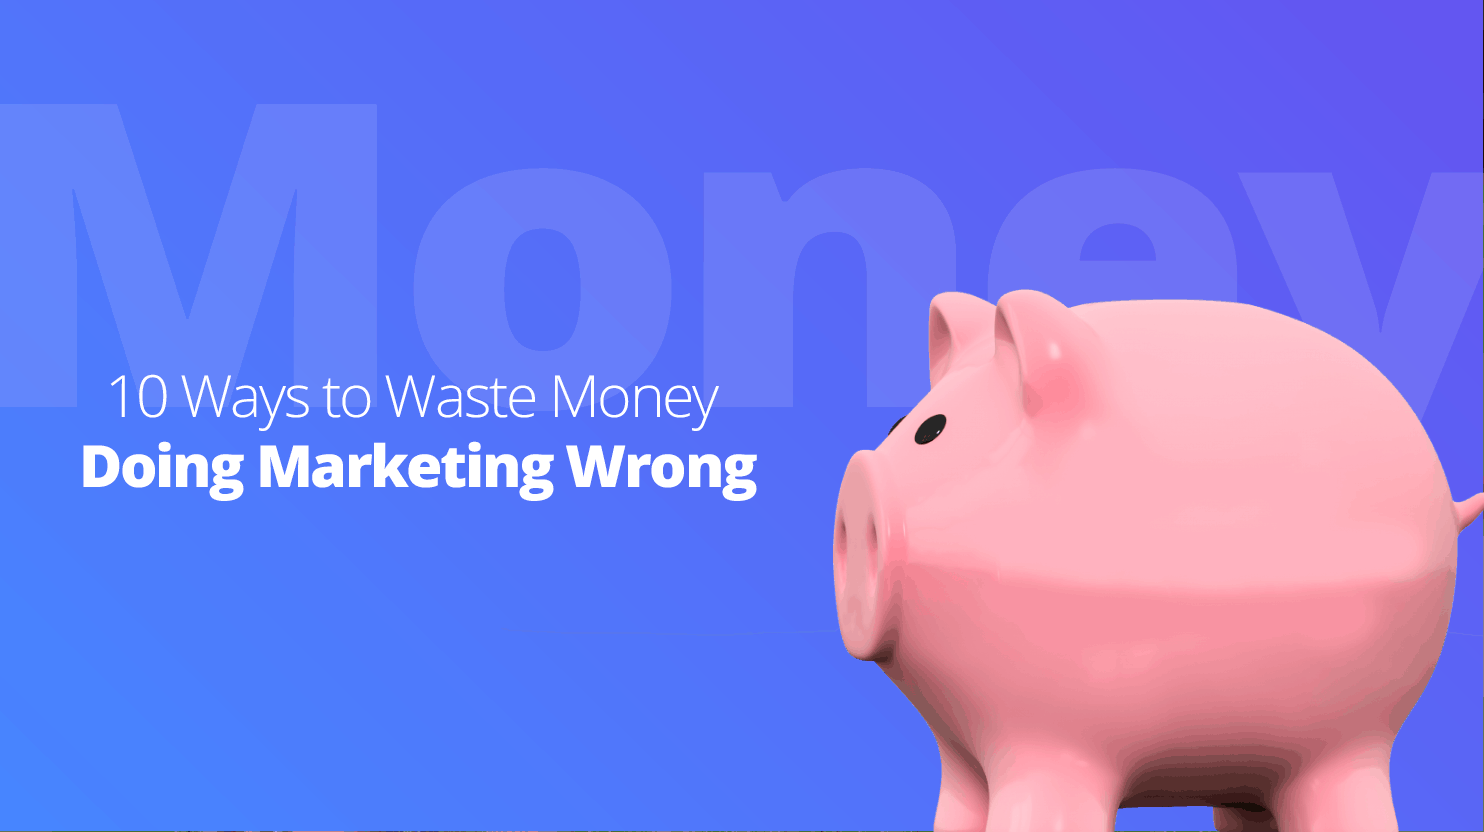 10 Ways to Waste Money Doing Marketing Wrong